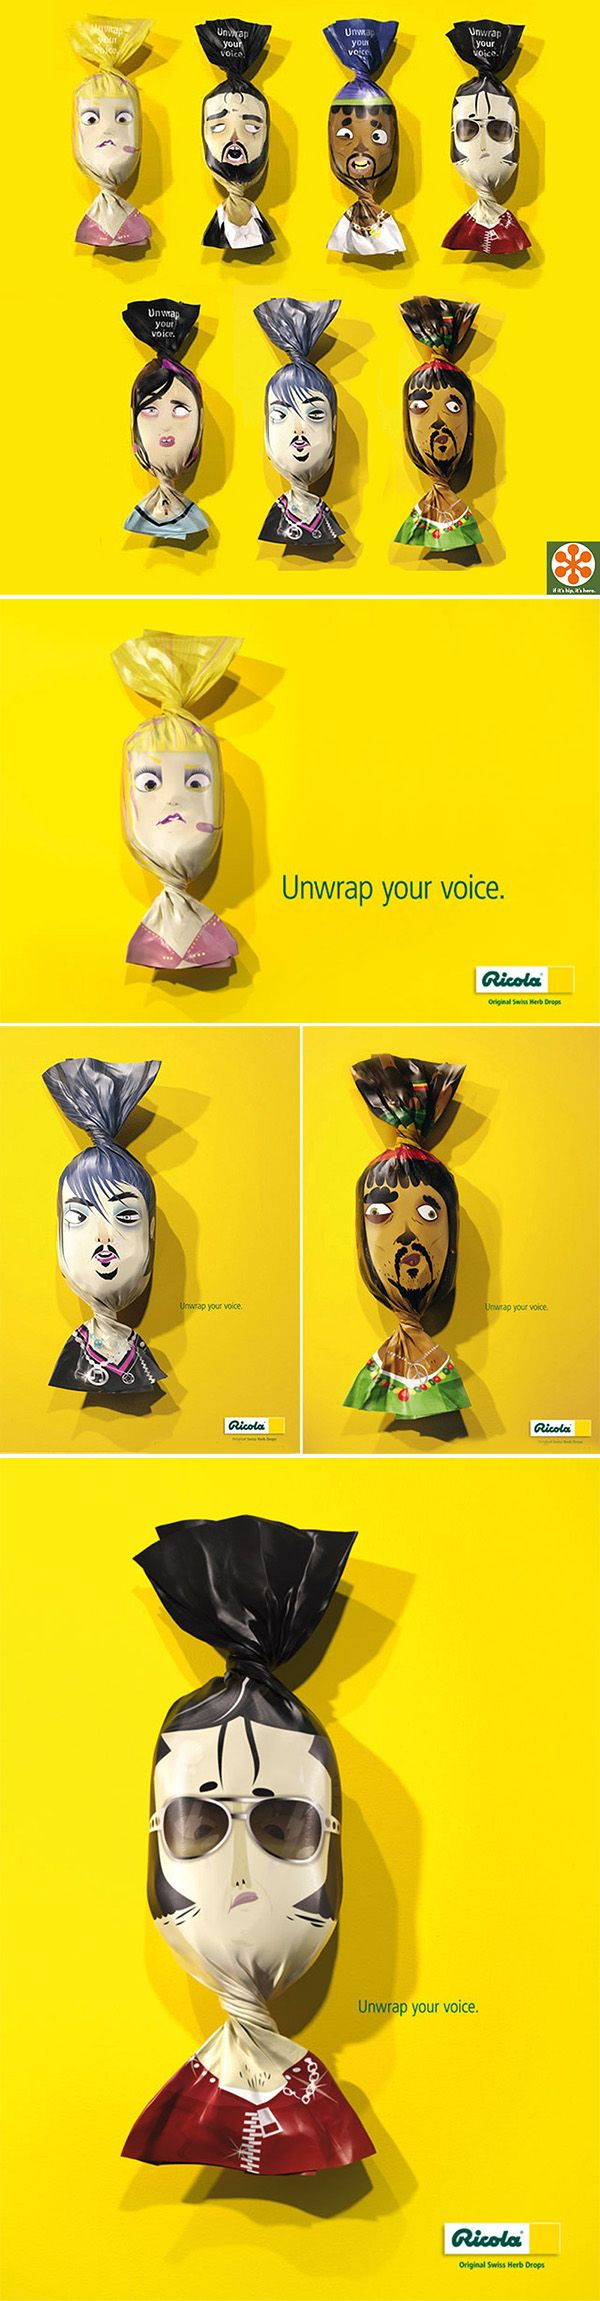 "Ricola's ""Unwrap Your Voice"" Packaging, Ad Campaign and Full Credits"